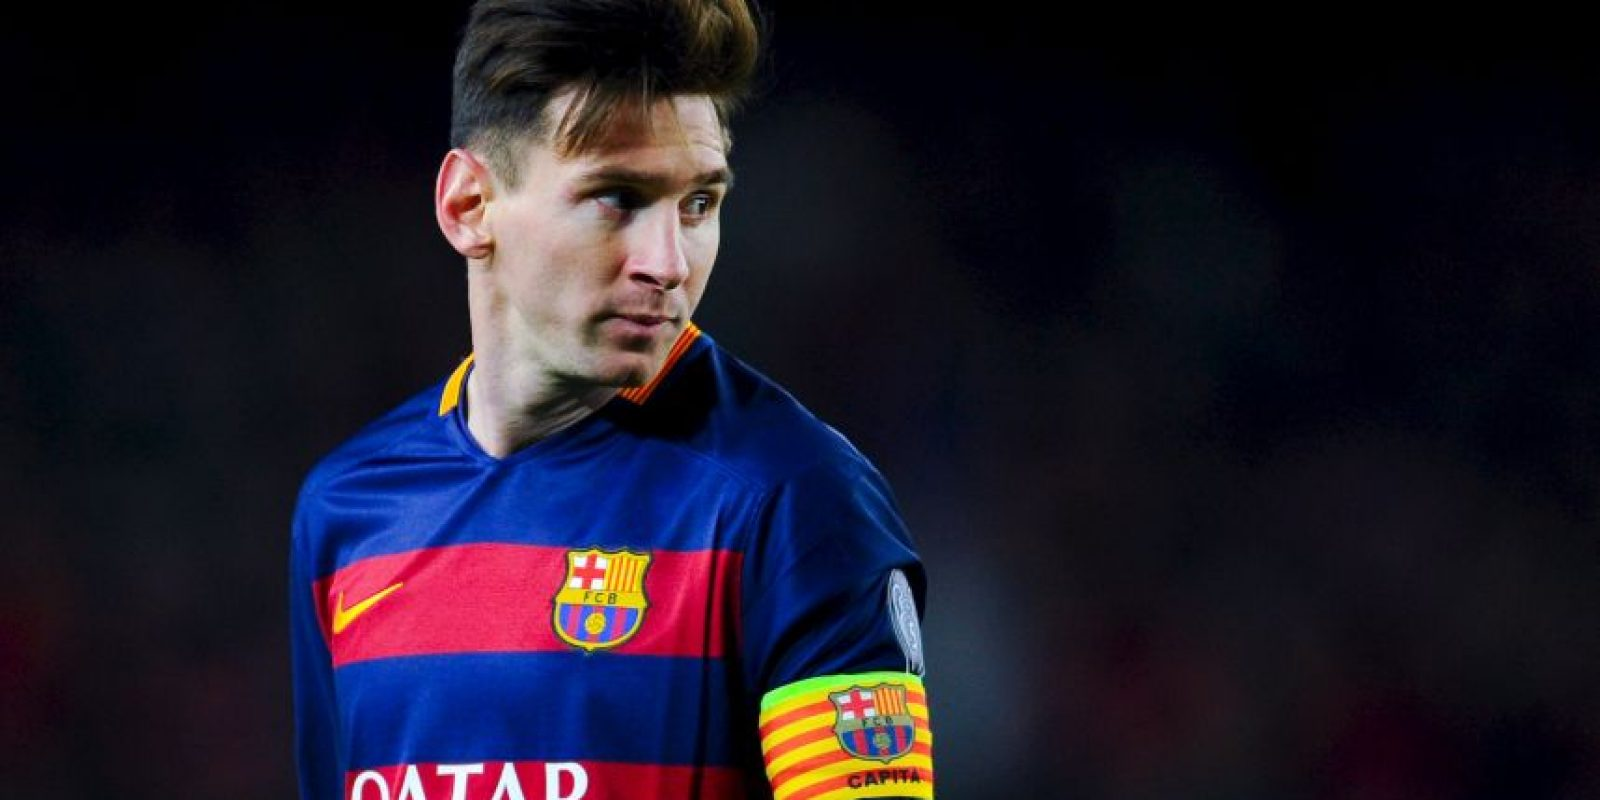 9. Lionel Messi Foto: Getty Images